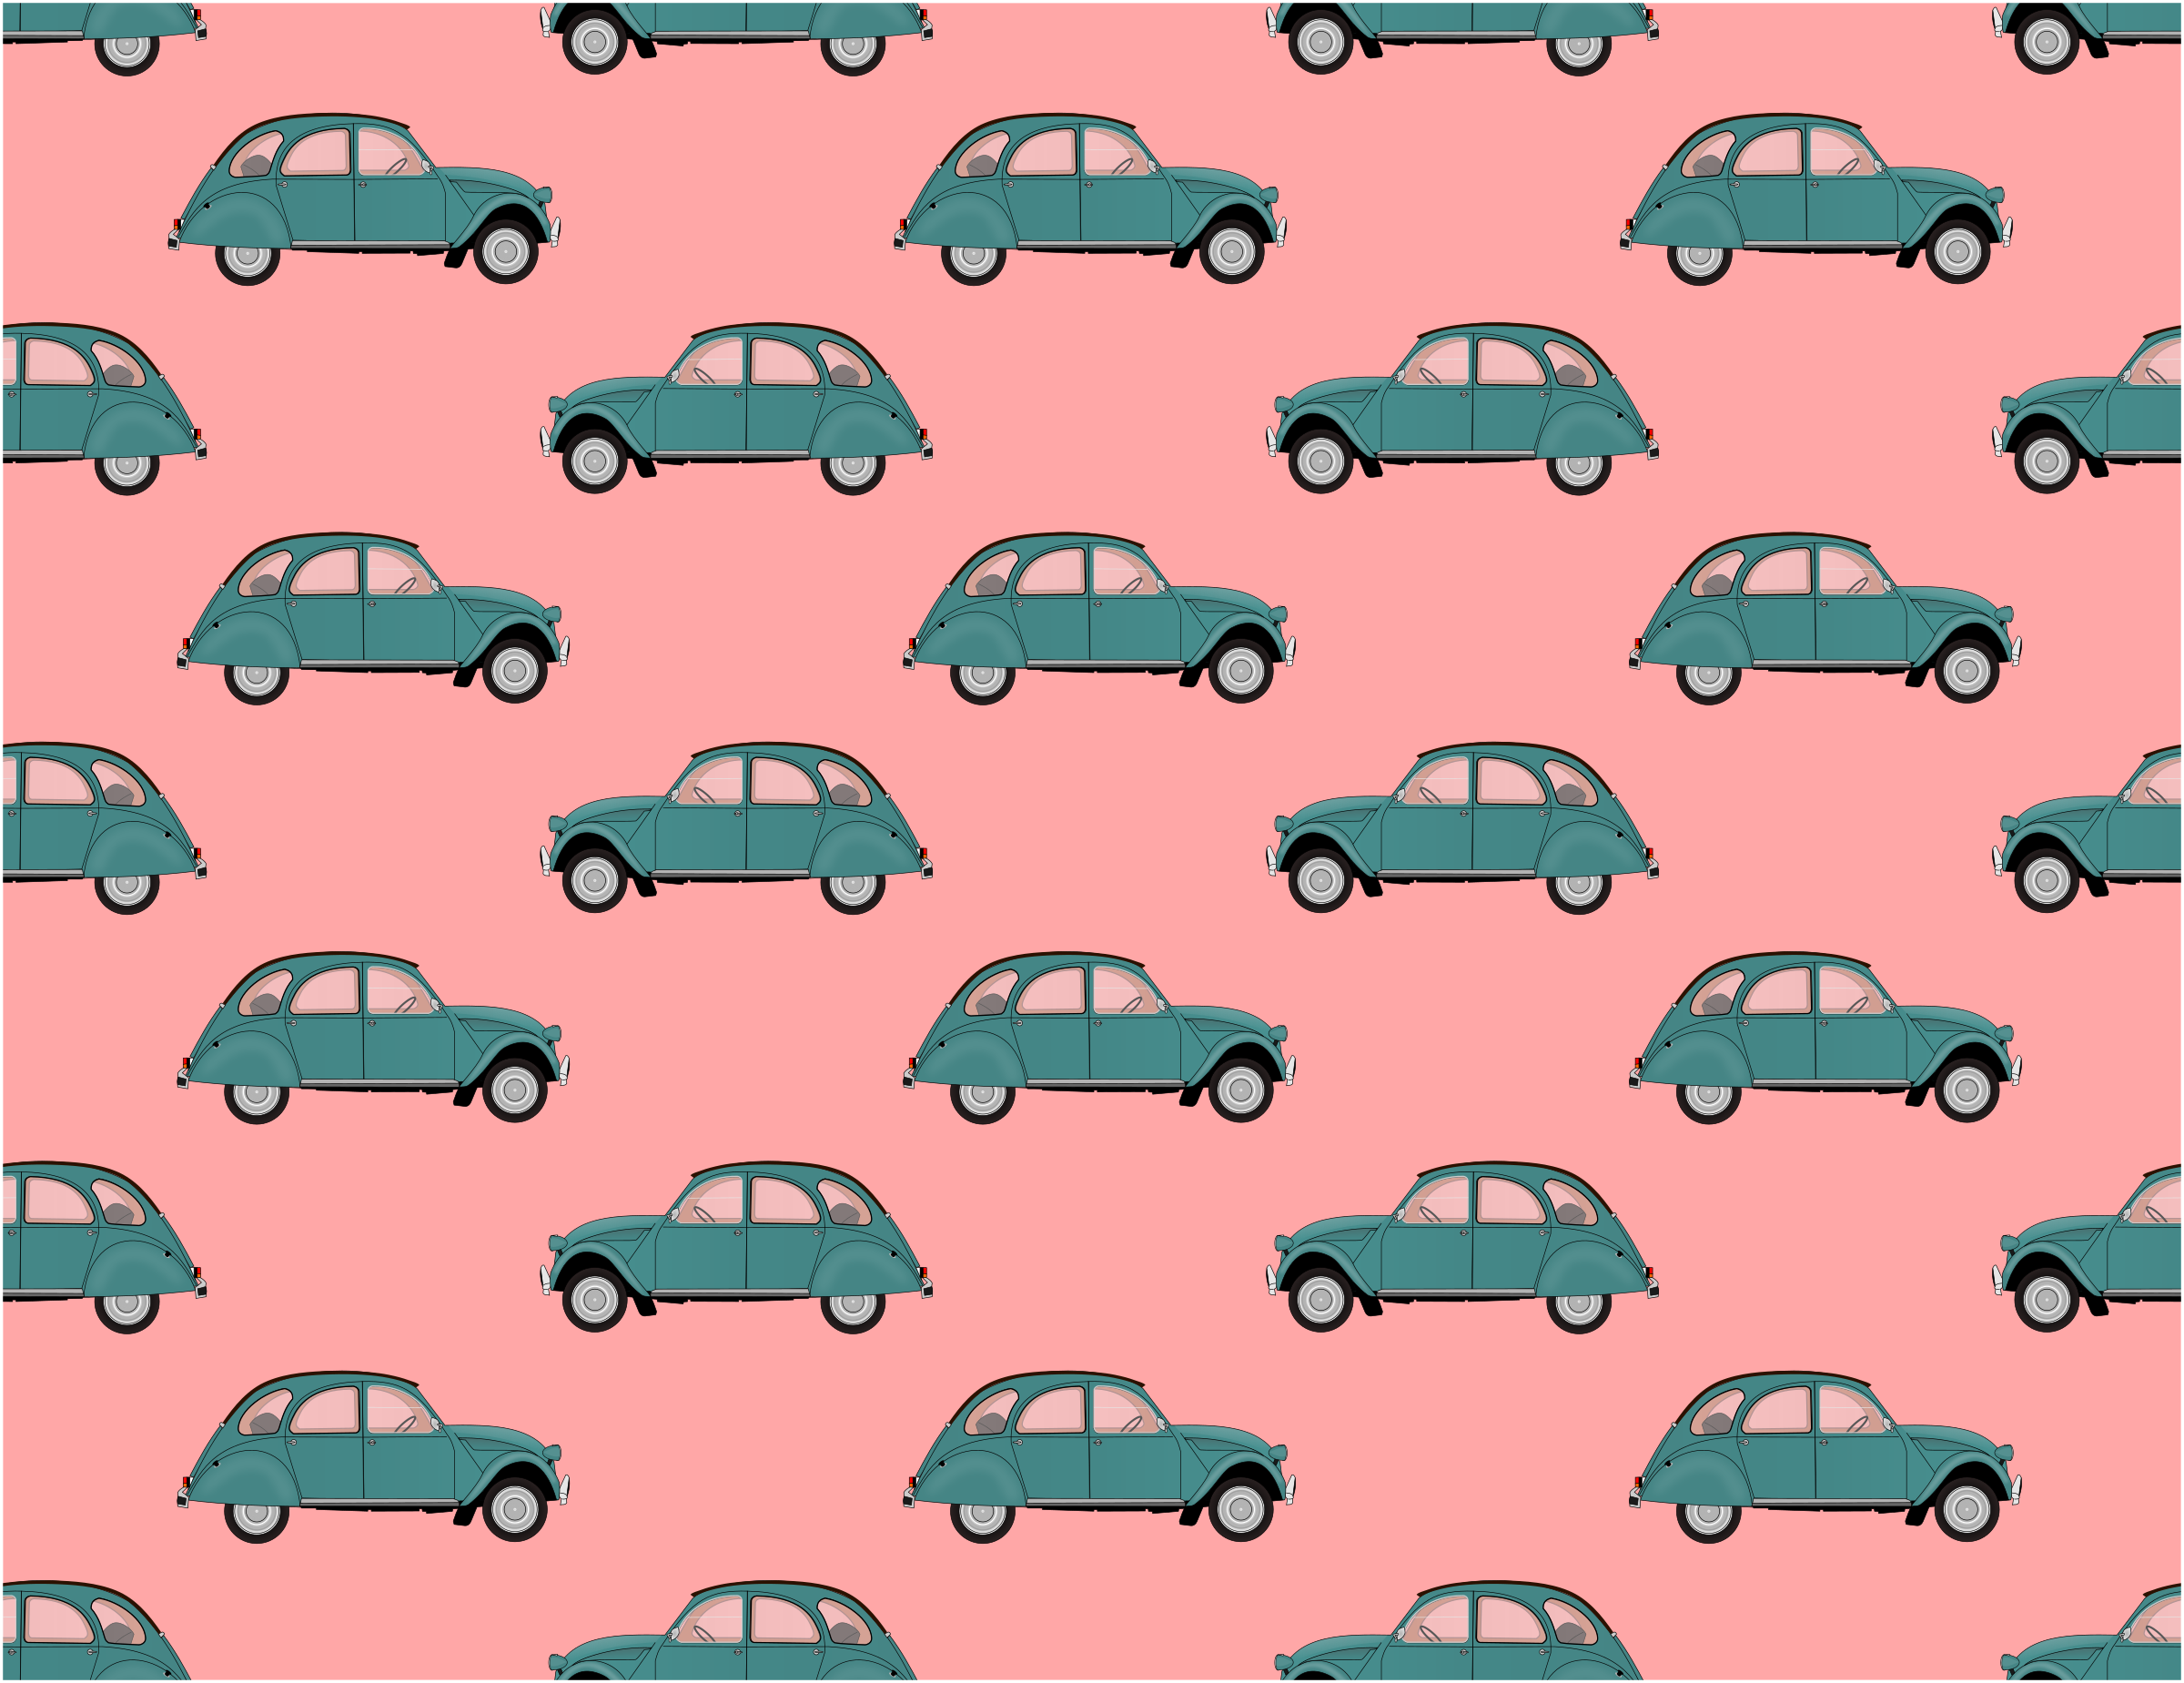 2CV pattern by Firkin